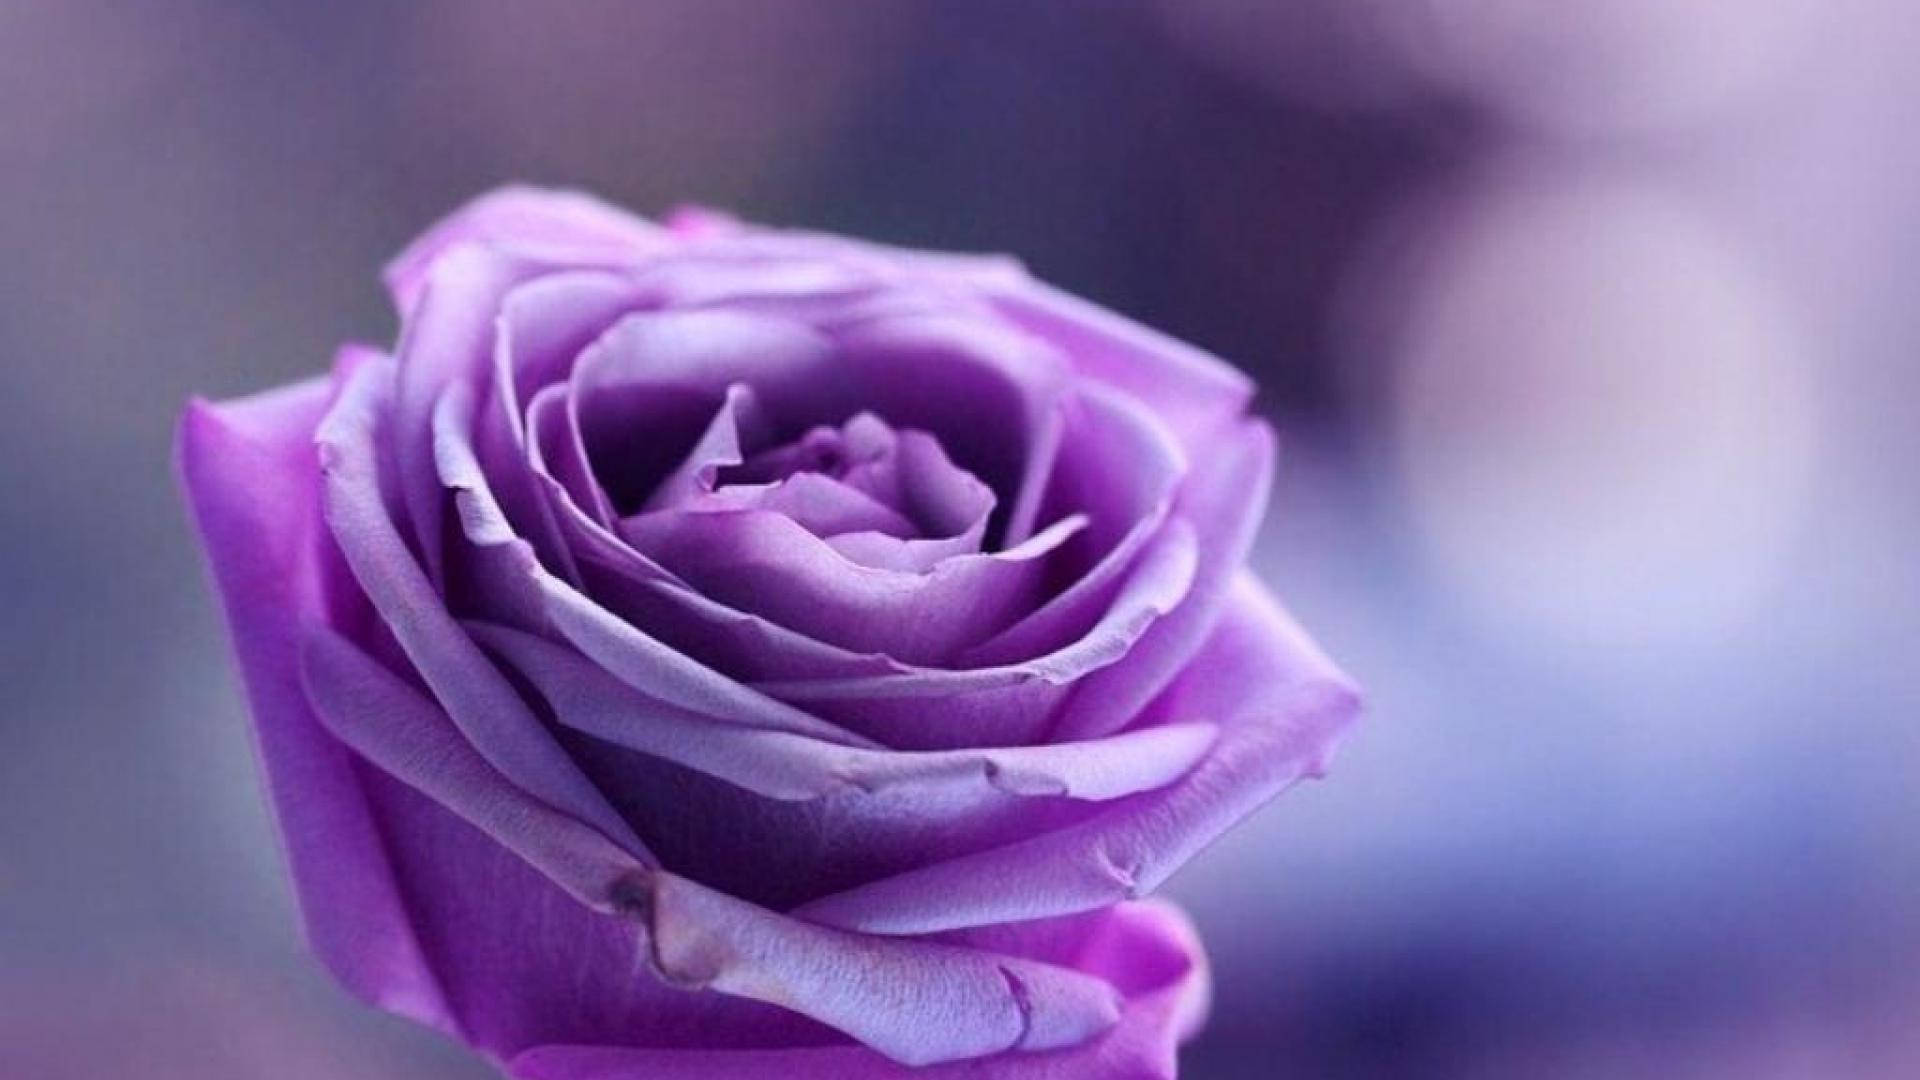 Purple Roses Background   Wallpaper High Definition High Quality 1920x1080